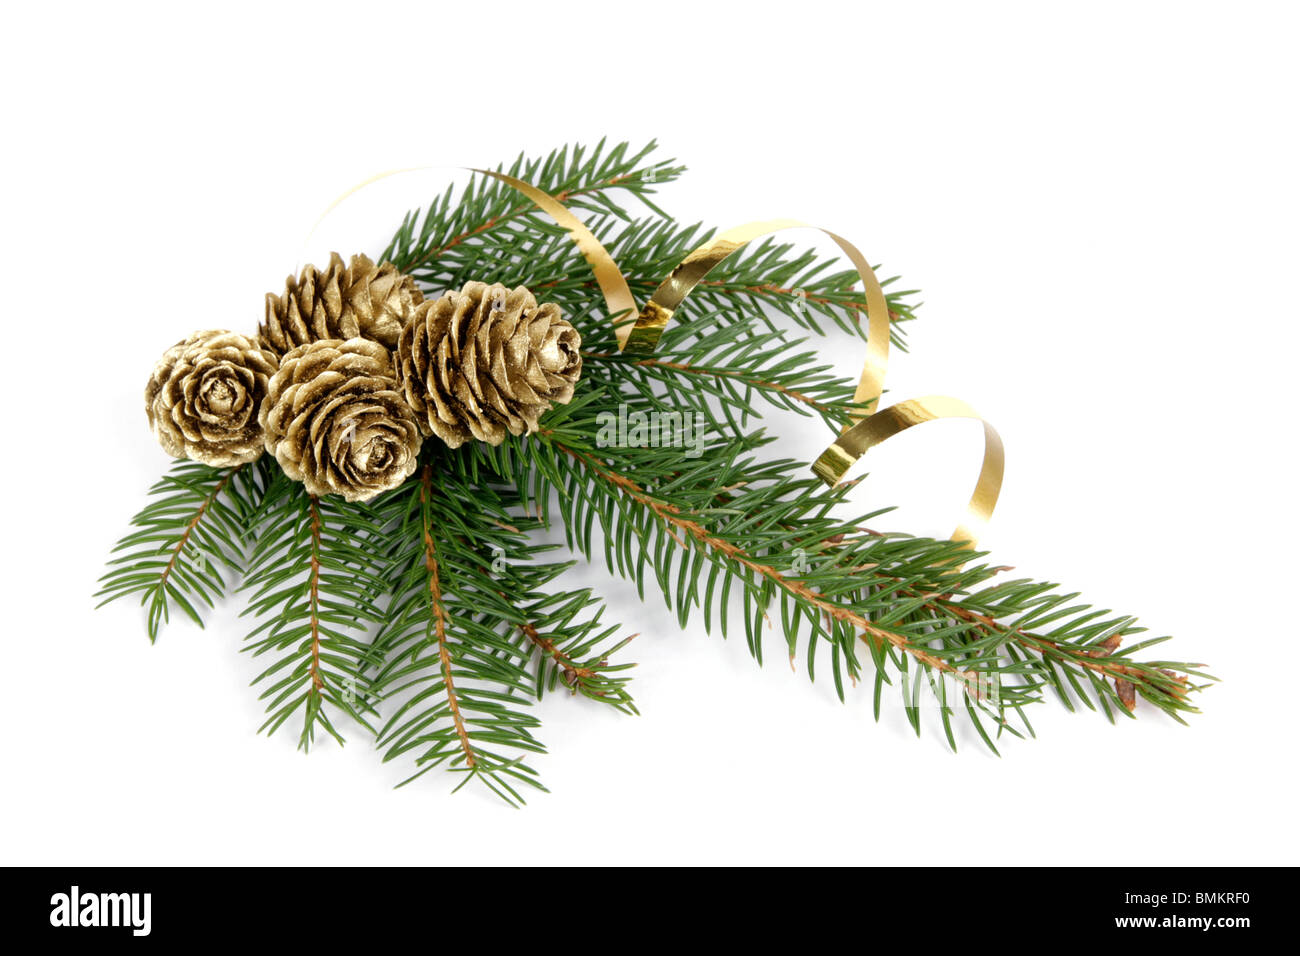 Twig of the spruce decorated with cones - Stock Image